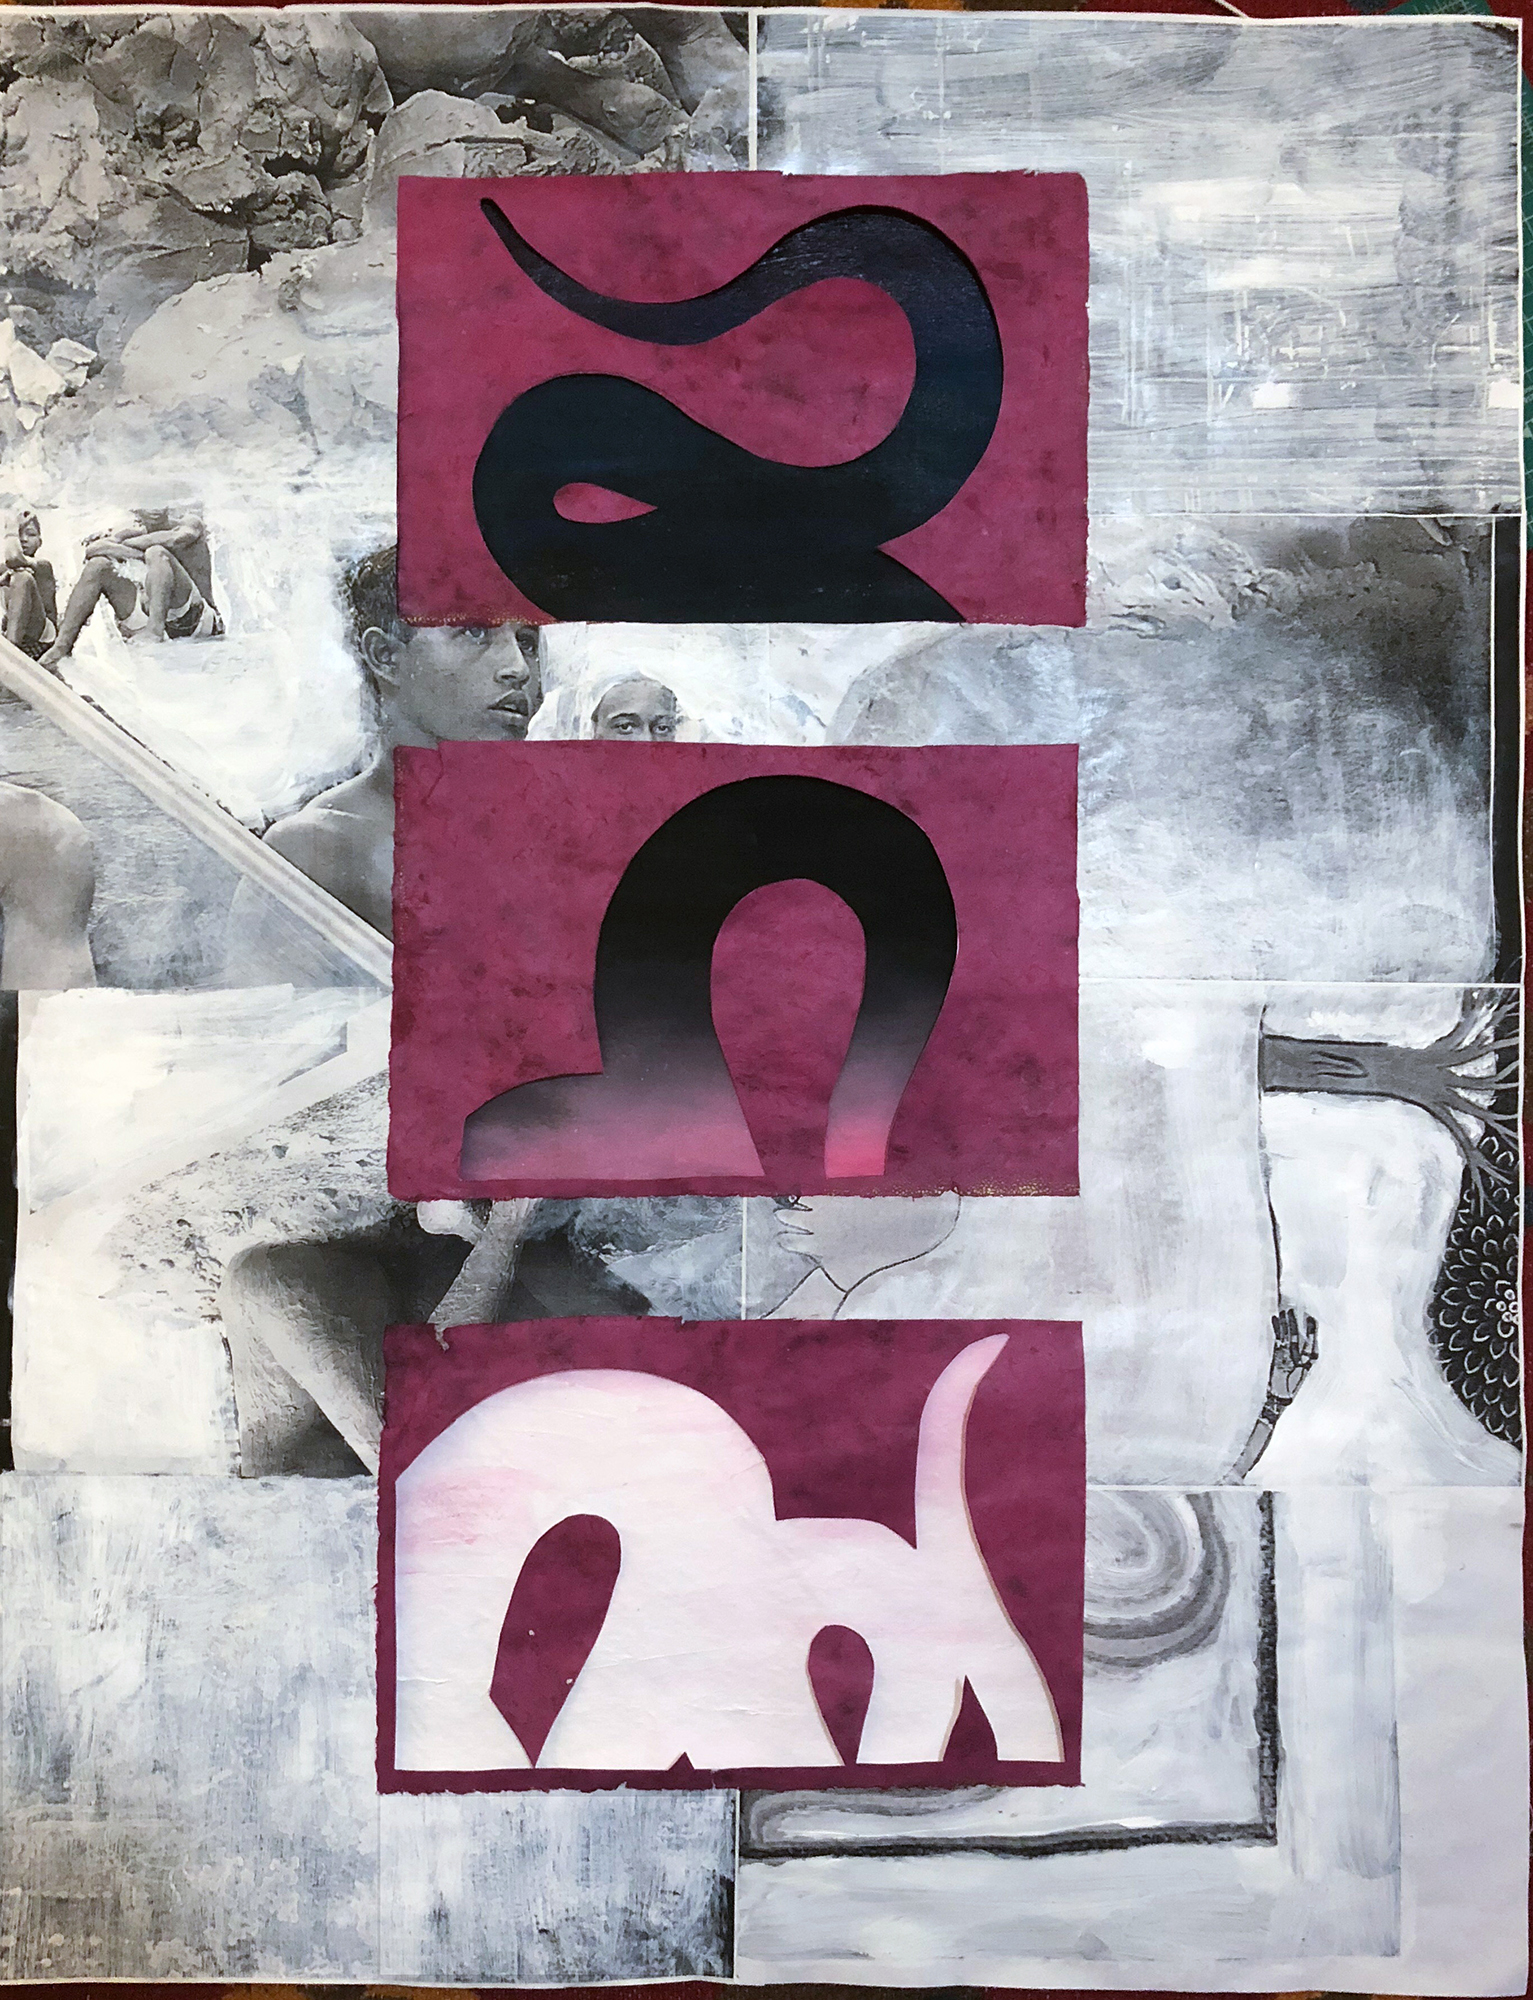 TonyMichaleEstrada - Intercessors 3 - 44 x 28 - assemblage_ hand made paper cut outs on acrylics on canvas on paper print collage with gesso  - 2018 - $800.jpg